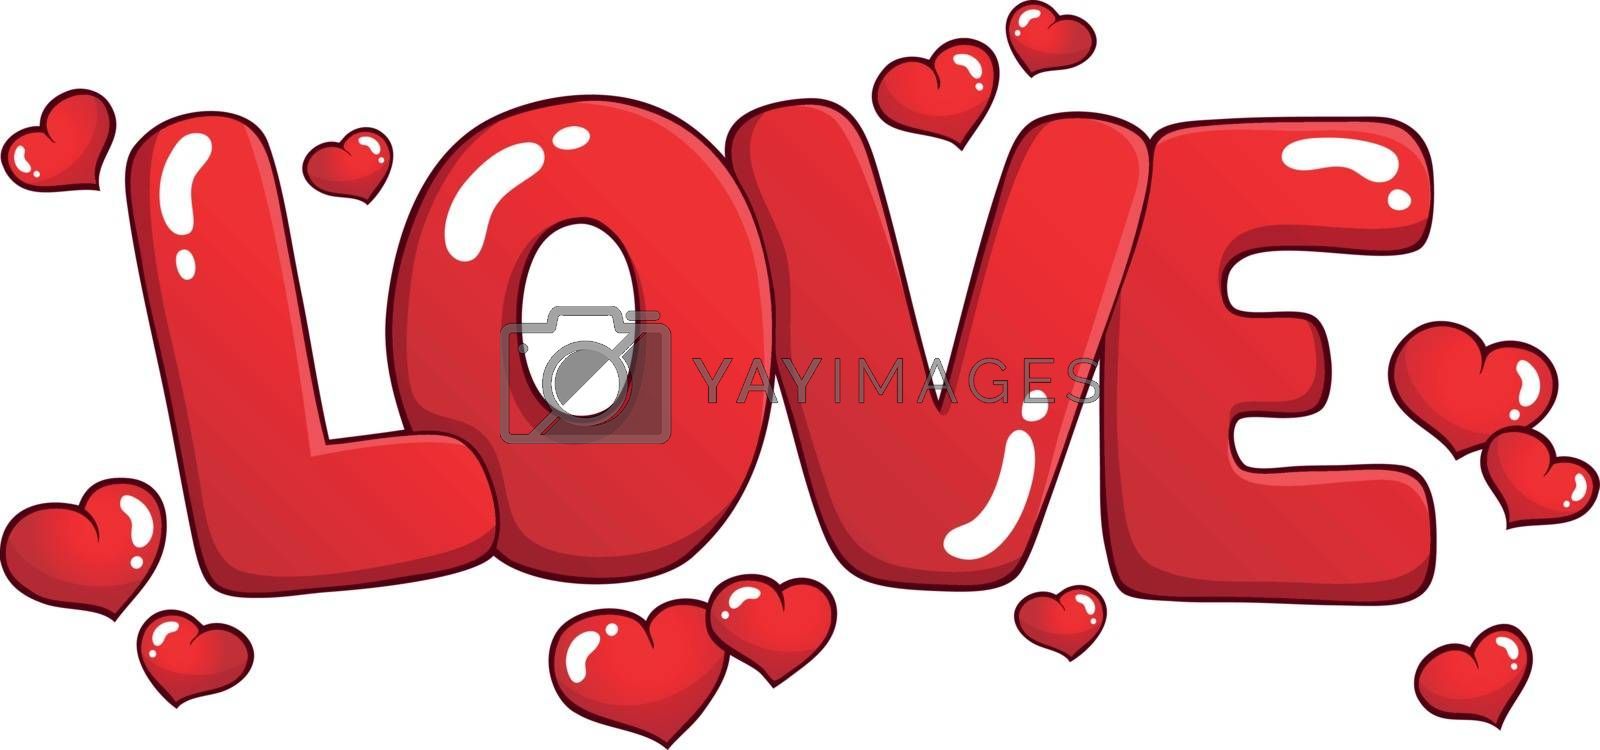 Word love theme image 1 - eps10 vector illustration.